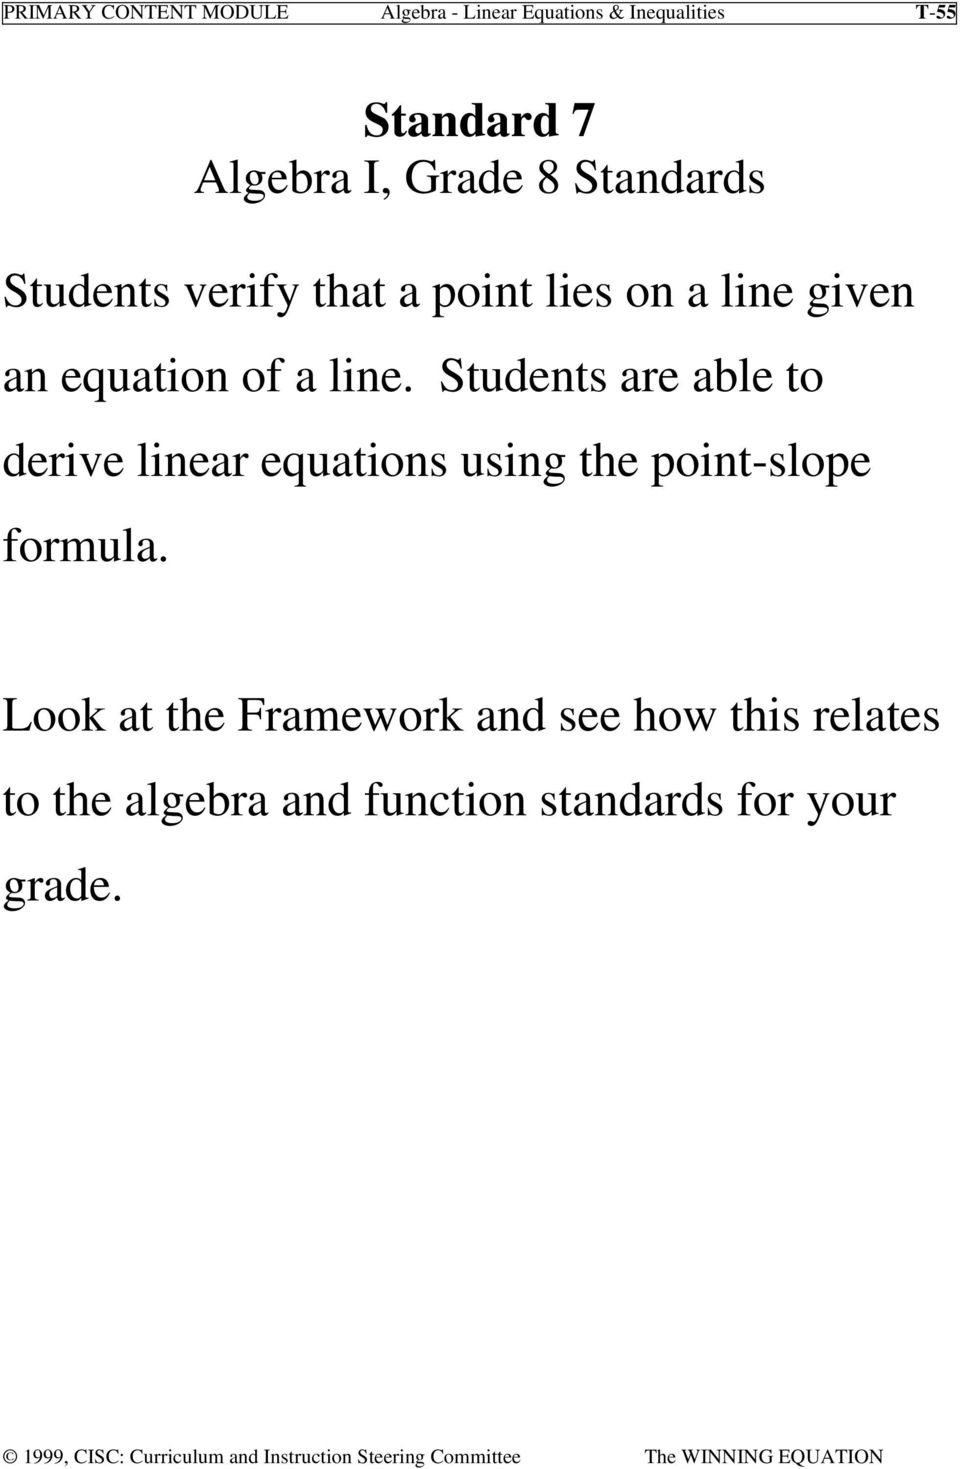 line. Students are able to derive linear equations using the point-slope formula.